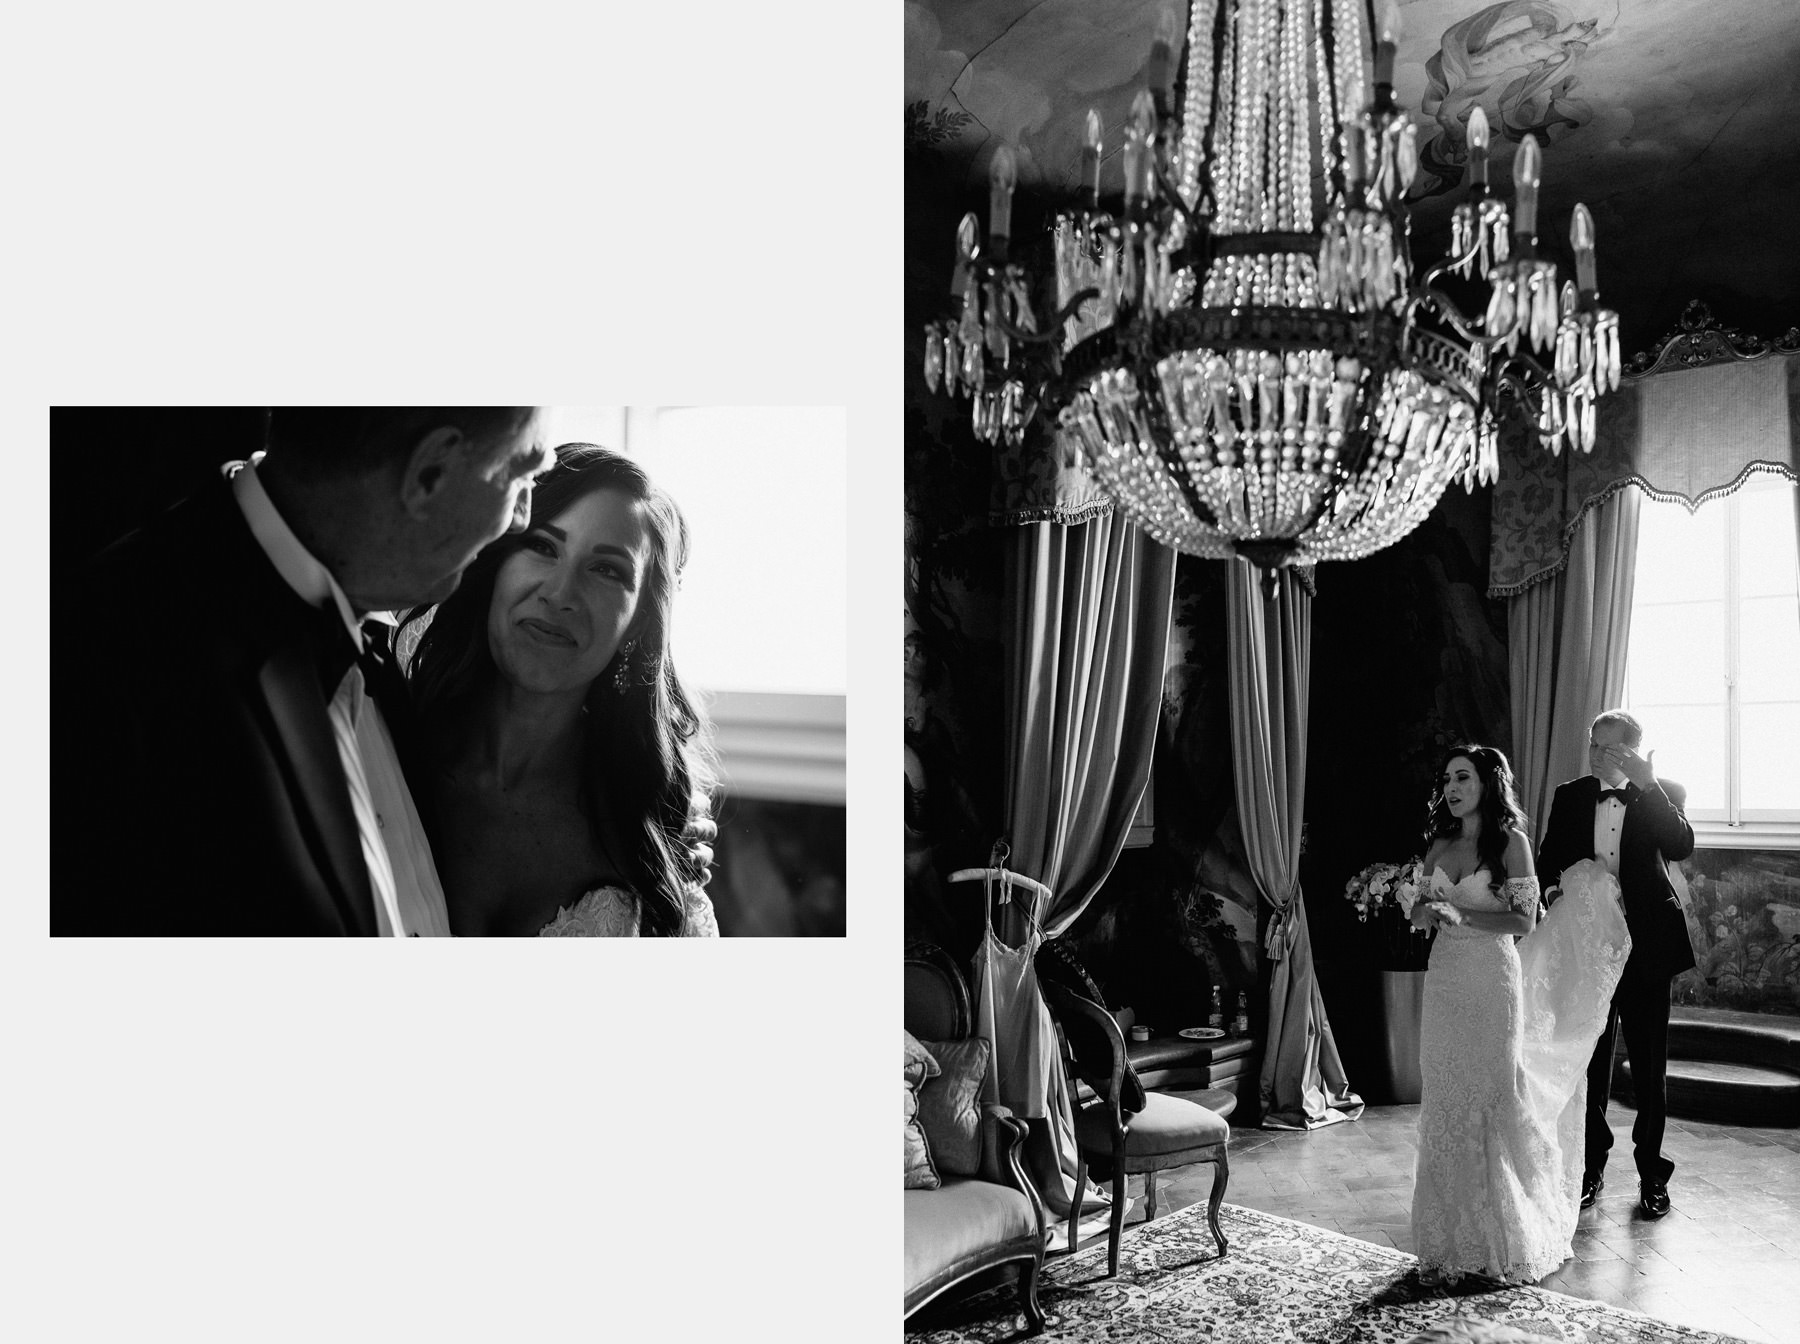 Timeless wedding in Florence piazza pitti palace bride father cr